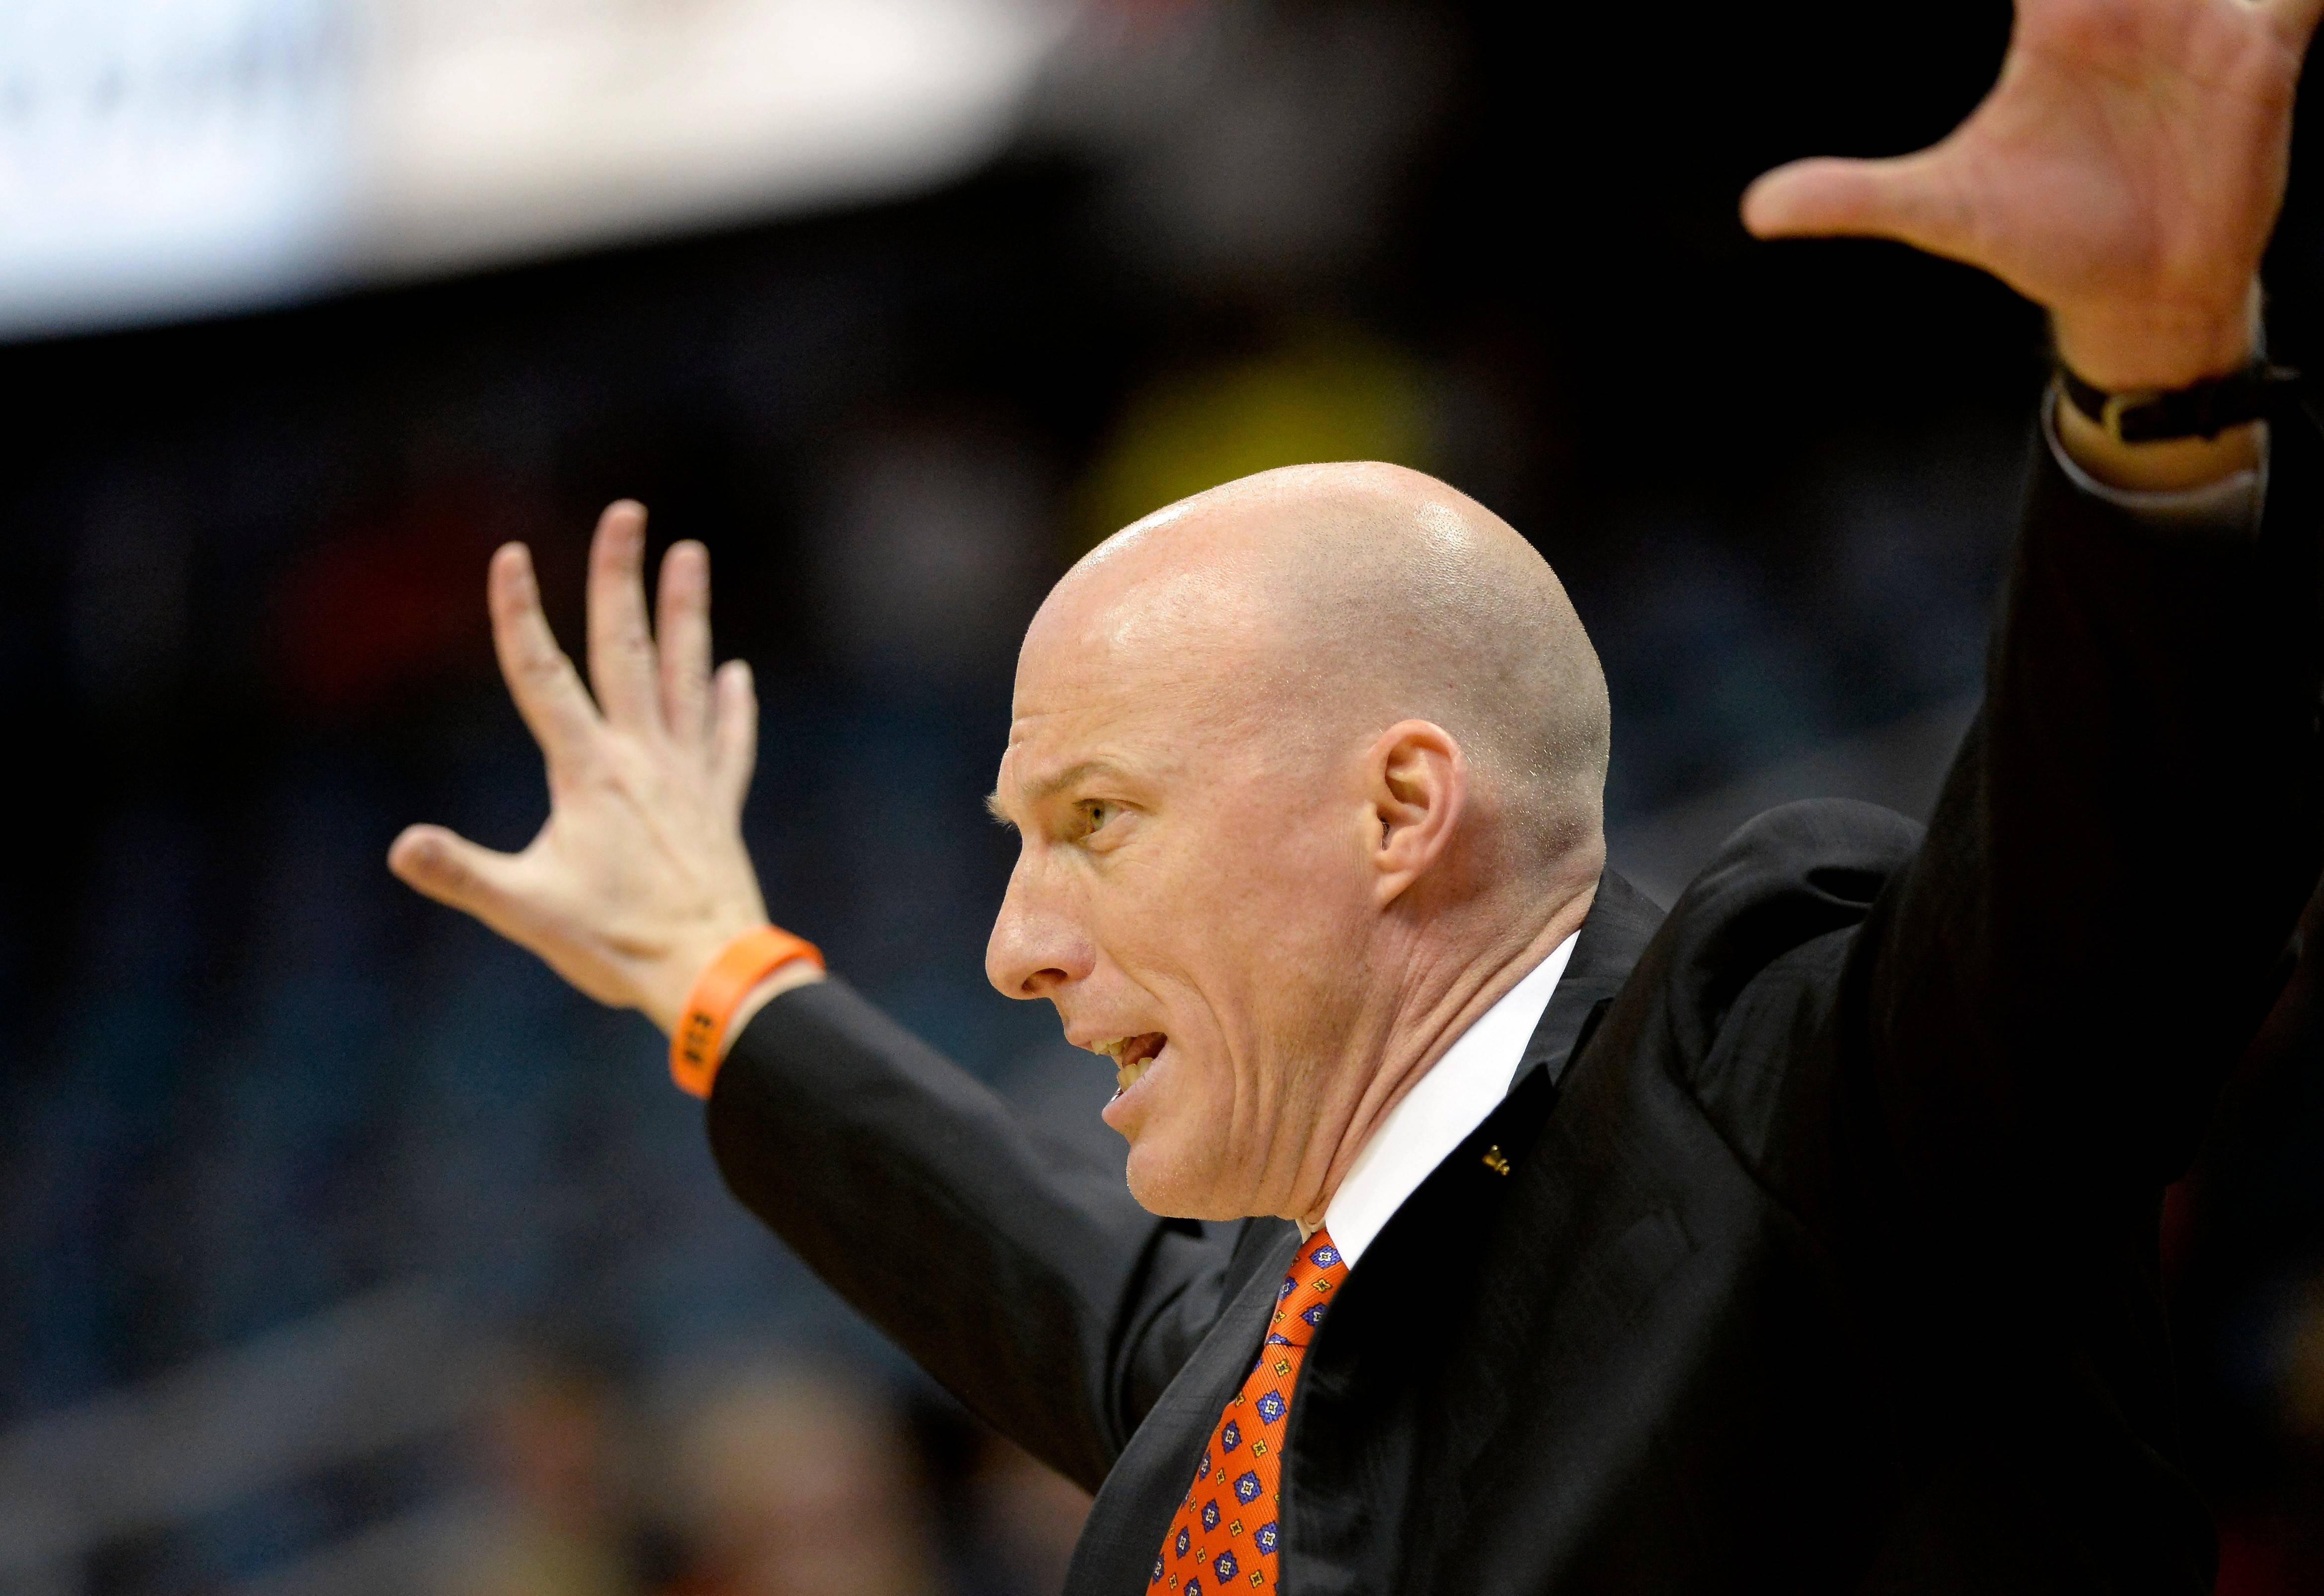 Illinois head coach John Groce announced on Tuesday that he has suspended forward Darius Paul for the upcoming season.